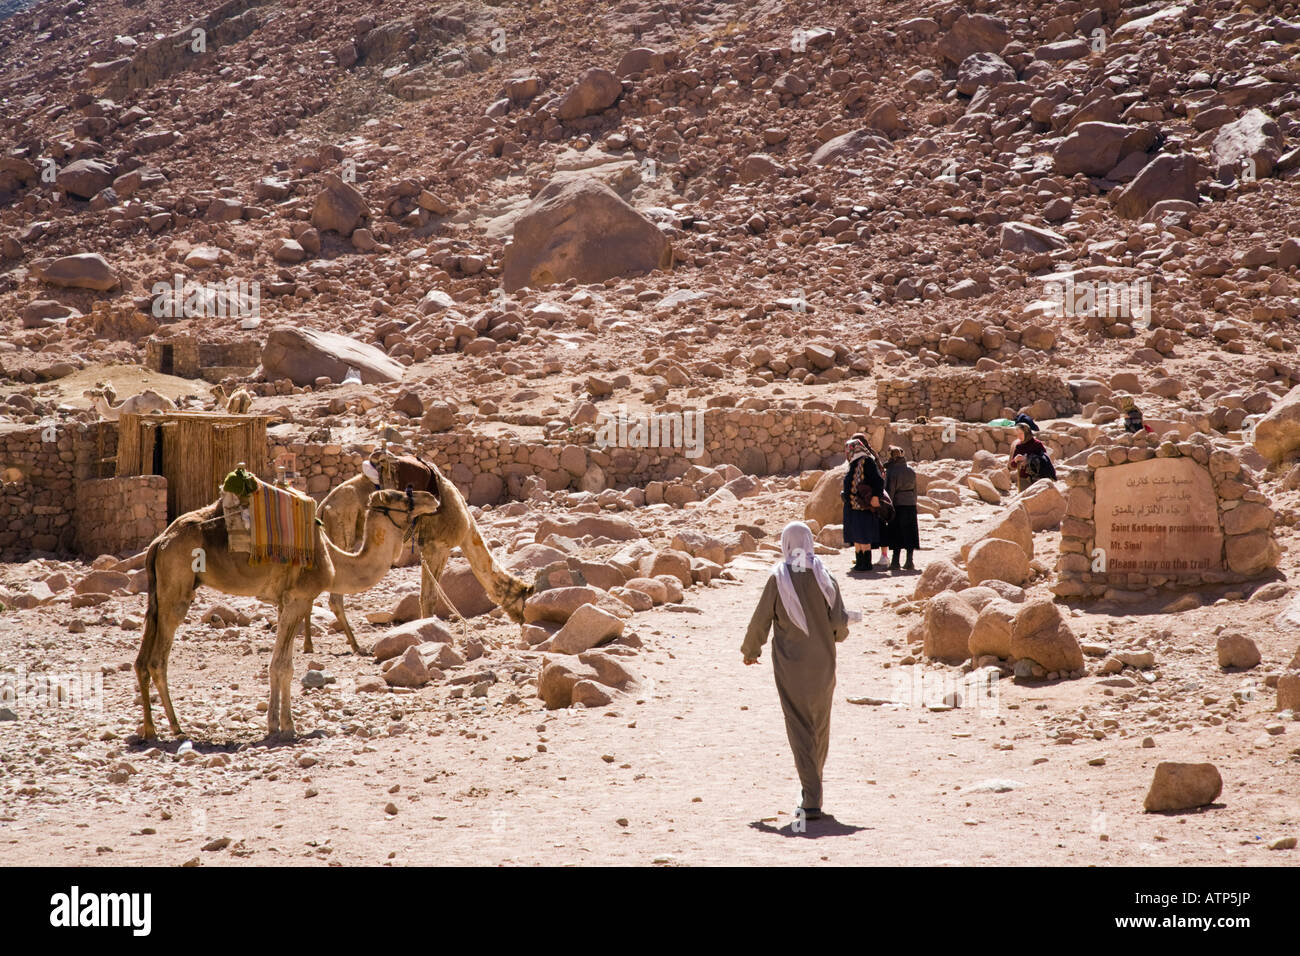 Bedouin people and camels on trail with sign to Mount Sinai